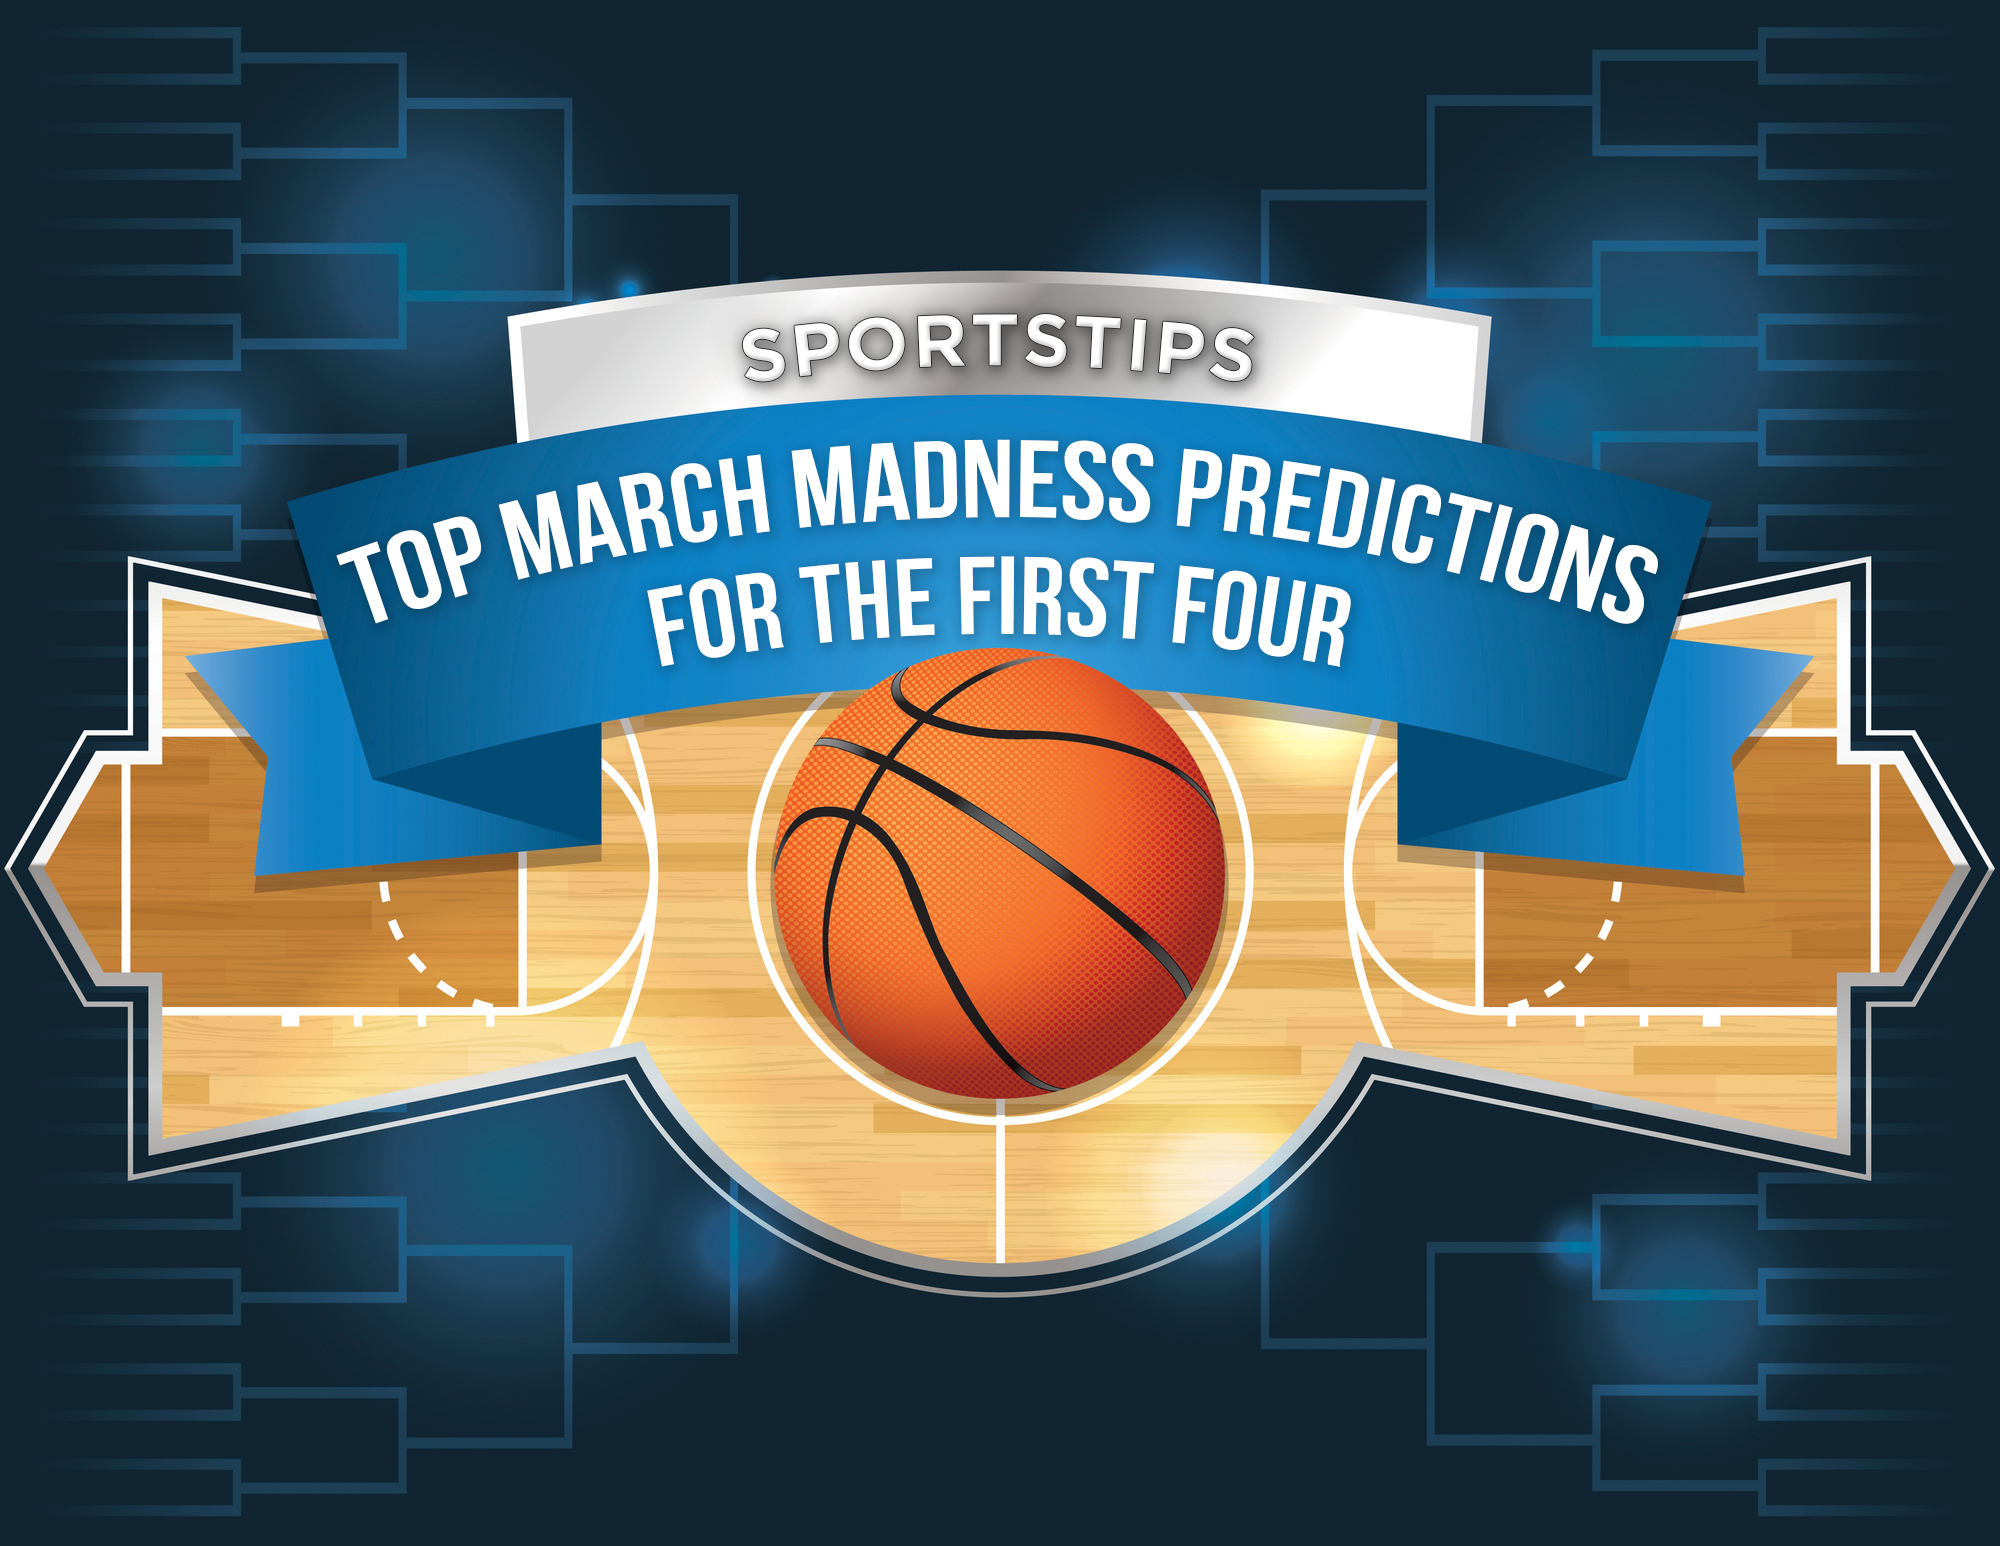 Top March Madness Predictions for First Four on Thursday, March 18th, 2021